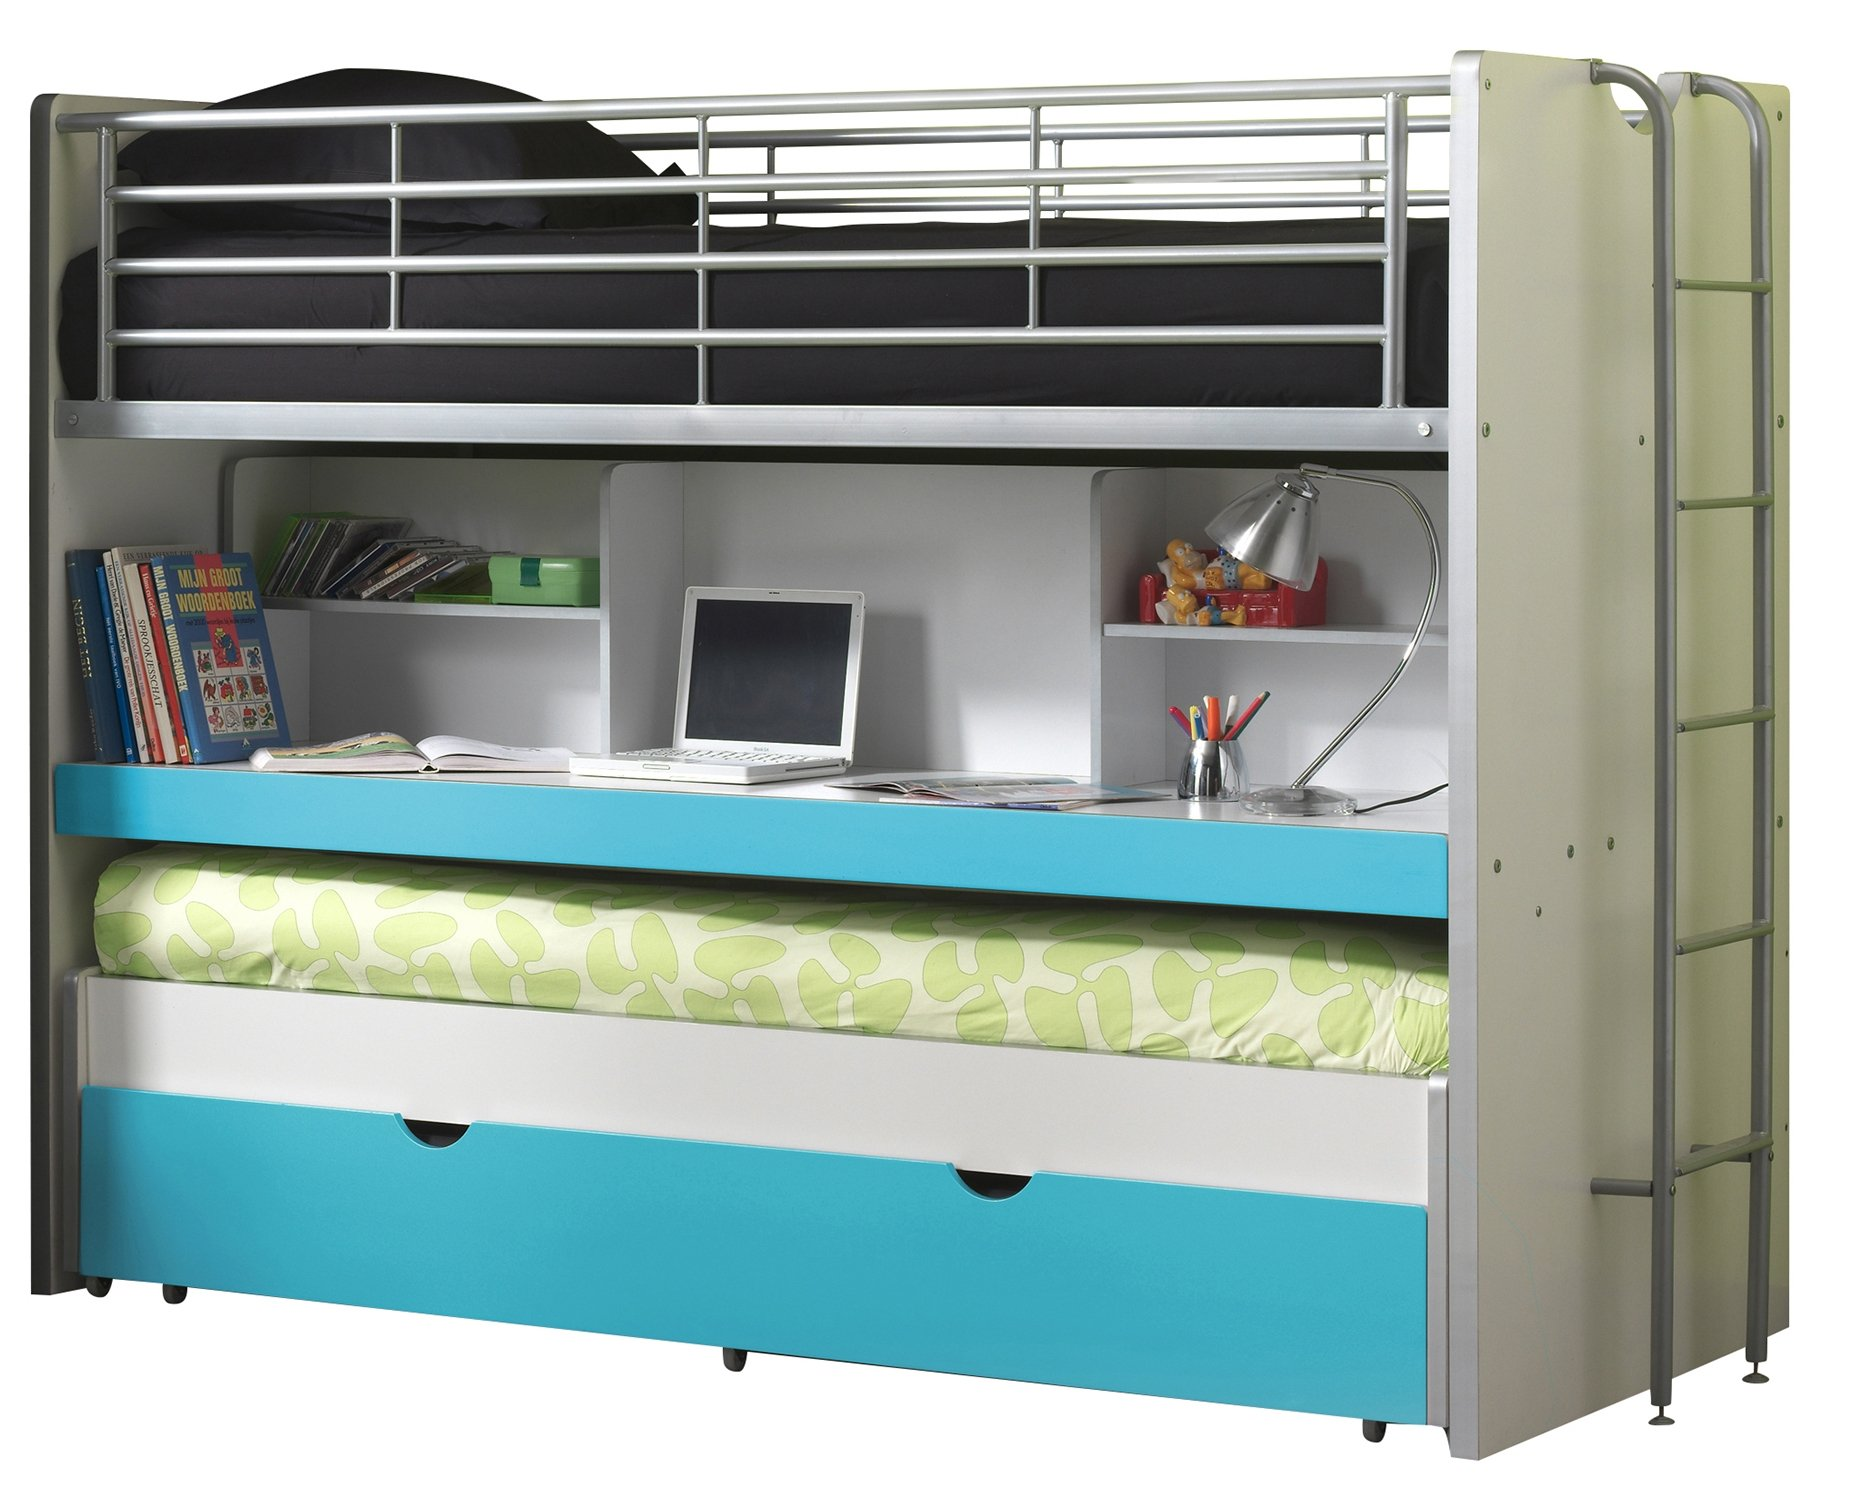 Vipack BOHS8094Bunk Beds Bonny, 207x 116x 98cm, bed 90x 200cm, White/Turquoise Vipack Cabin bed with 2Sleeping surfaces 90x 200cm and 1drawer. Extendable Work Surface. Chipboard White MDF fronts and varnish with fall protection 1